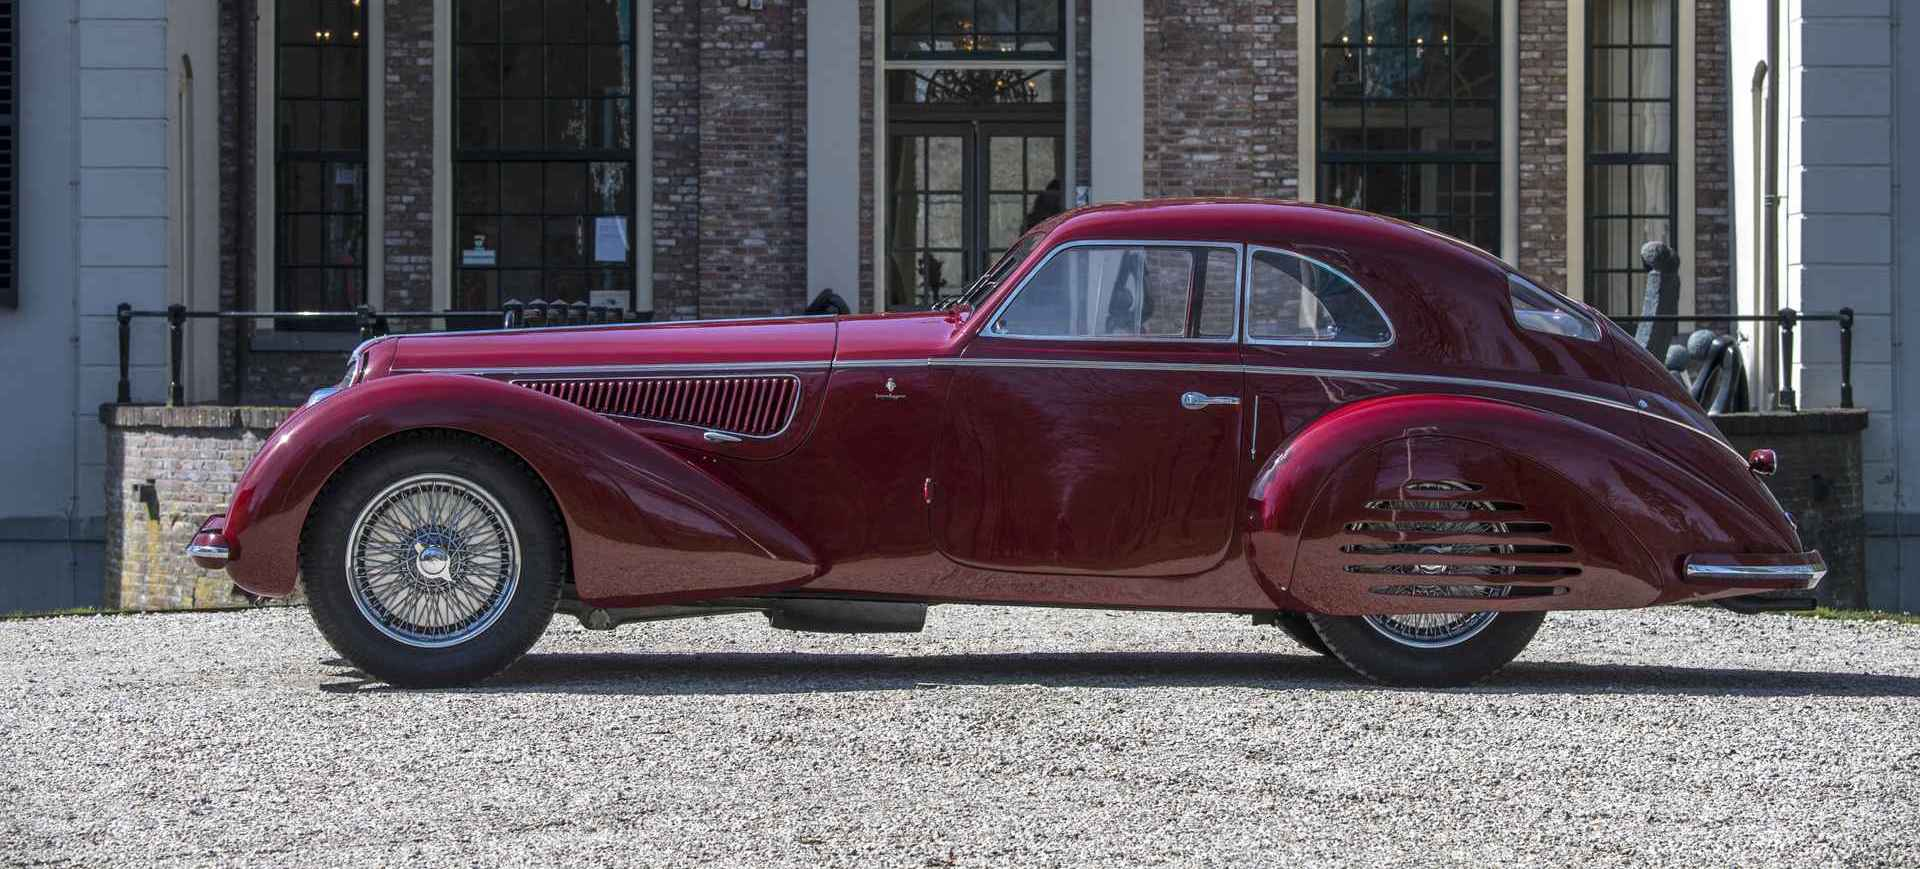 1939 Alfa Romeo 8C Touring Berlinetta Could Bring $25M At Auction